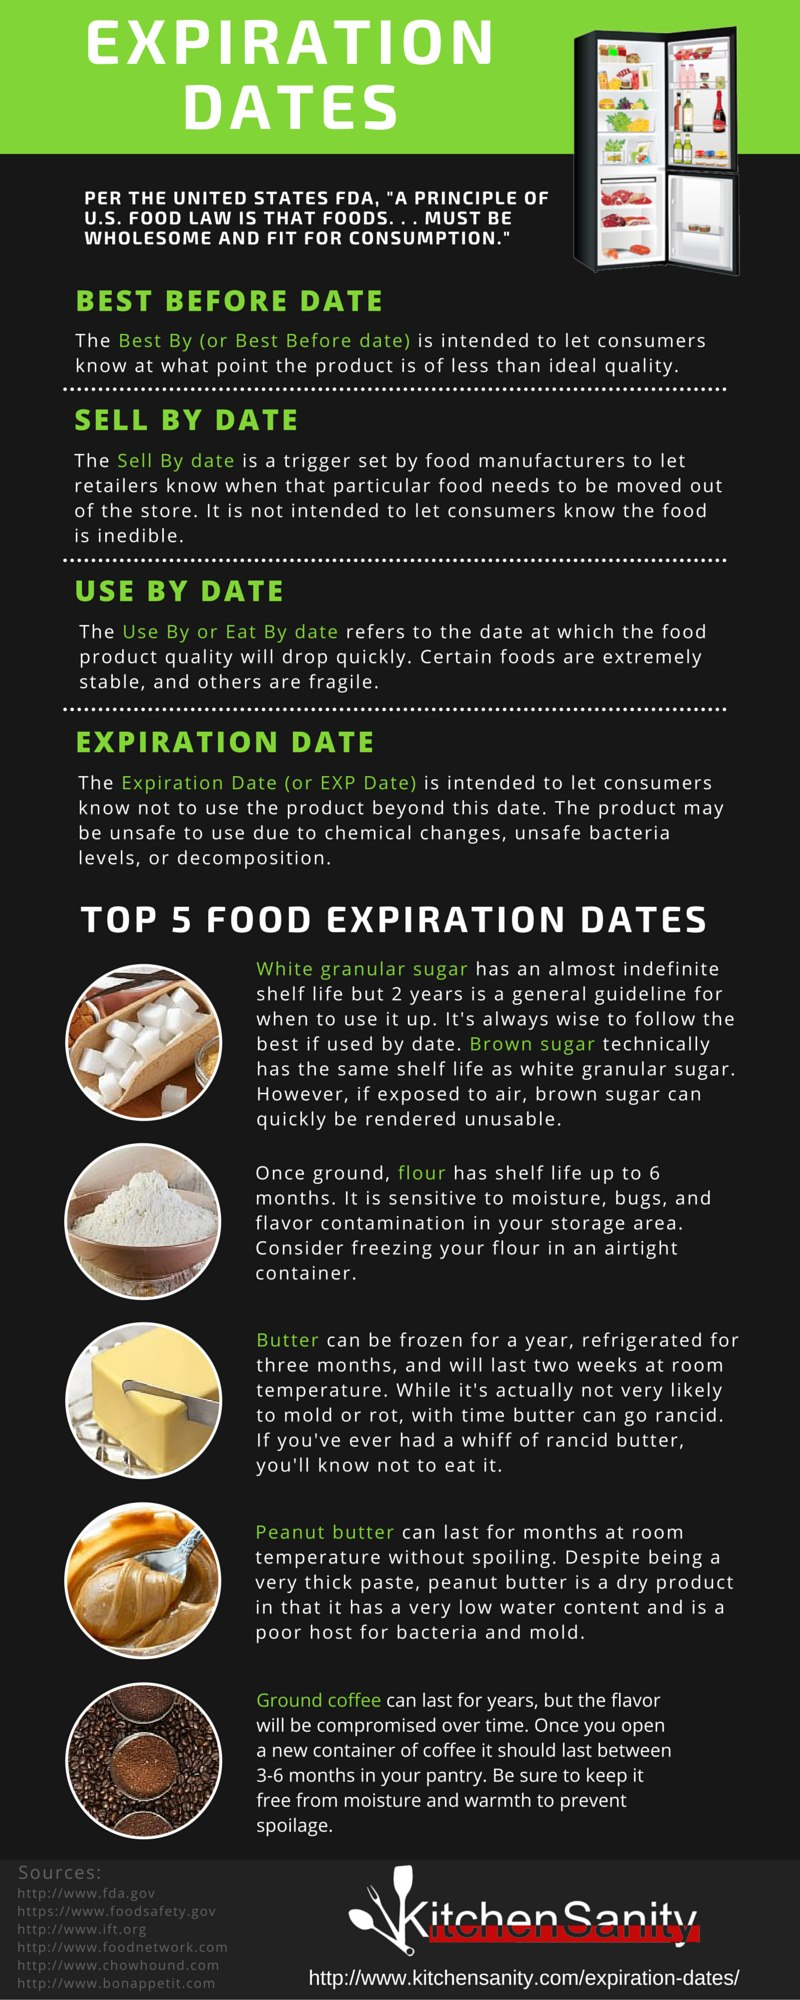 food expiration dates infographic